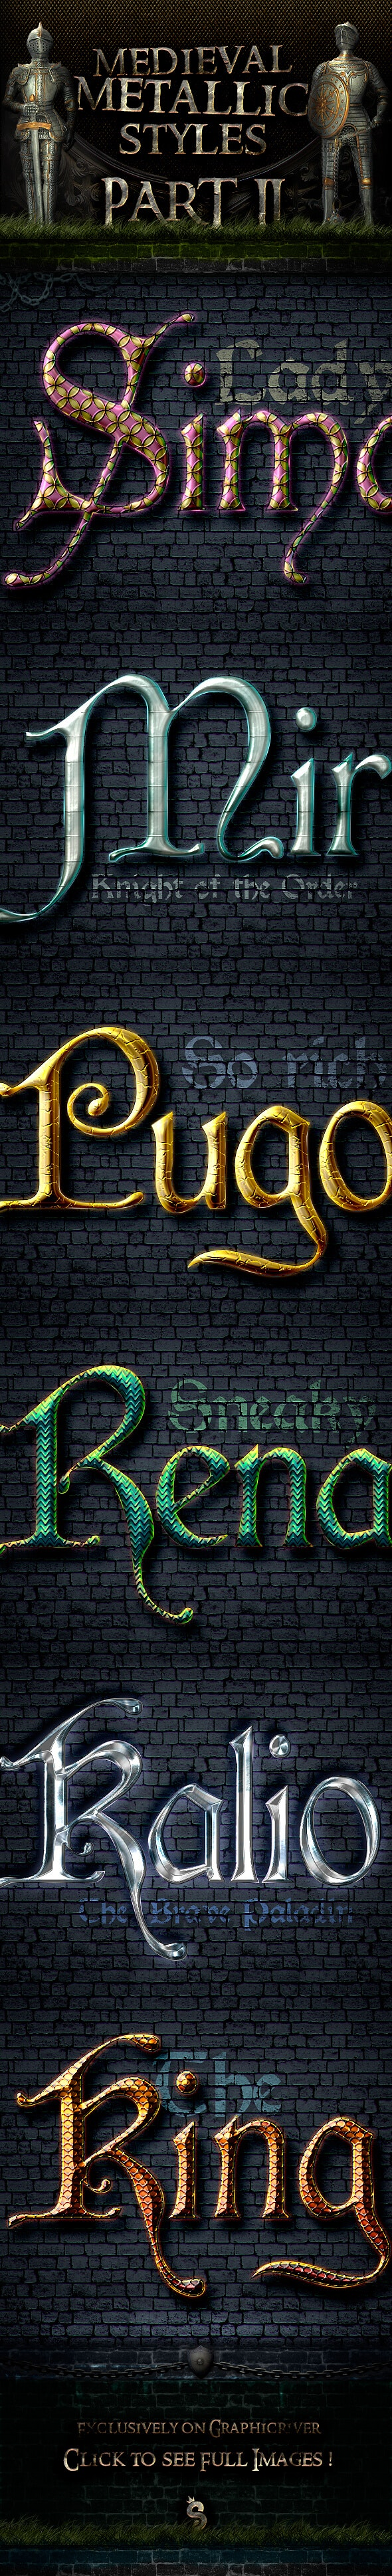 Metallic Medieval Styles - Part 2 - Text Effects Styles